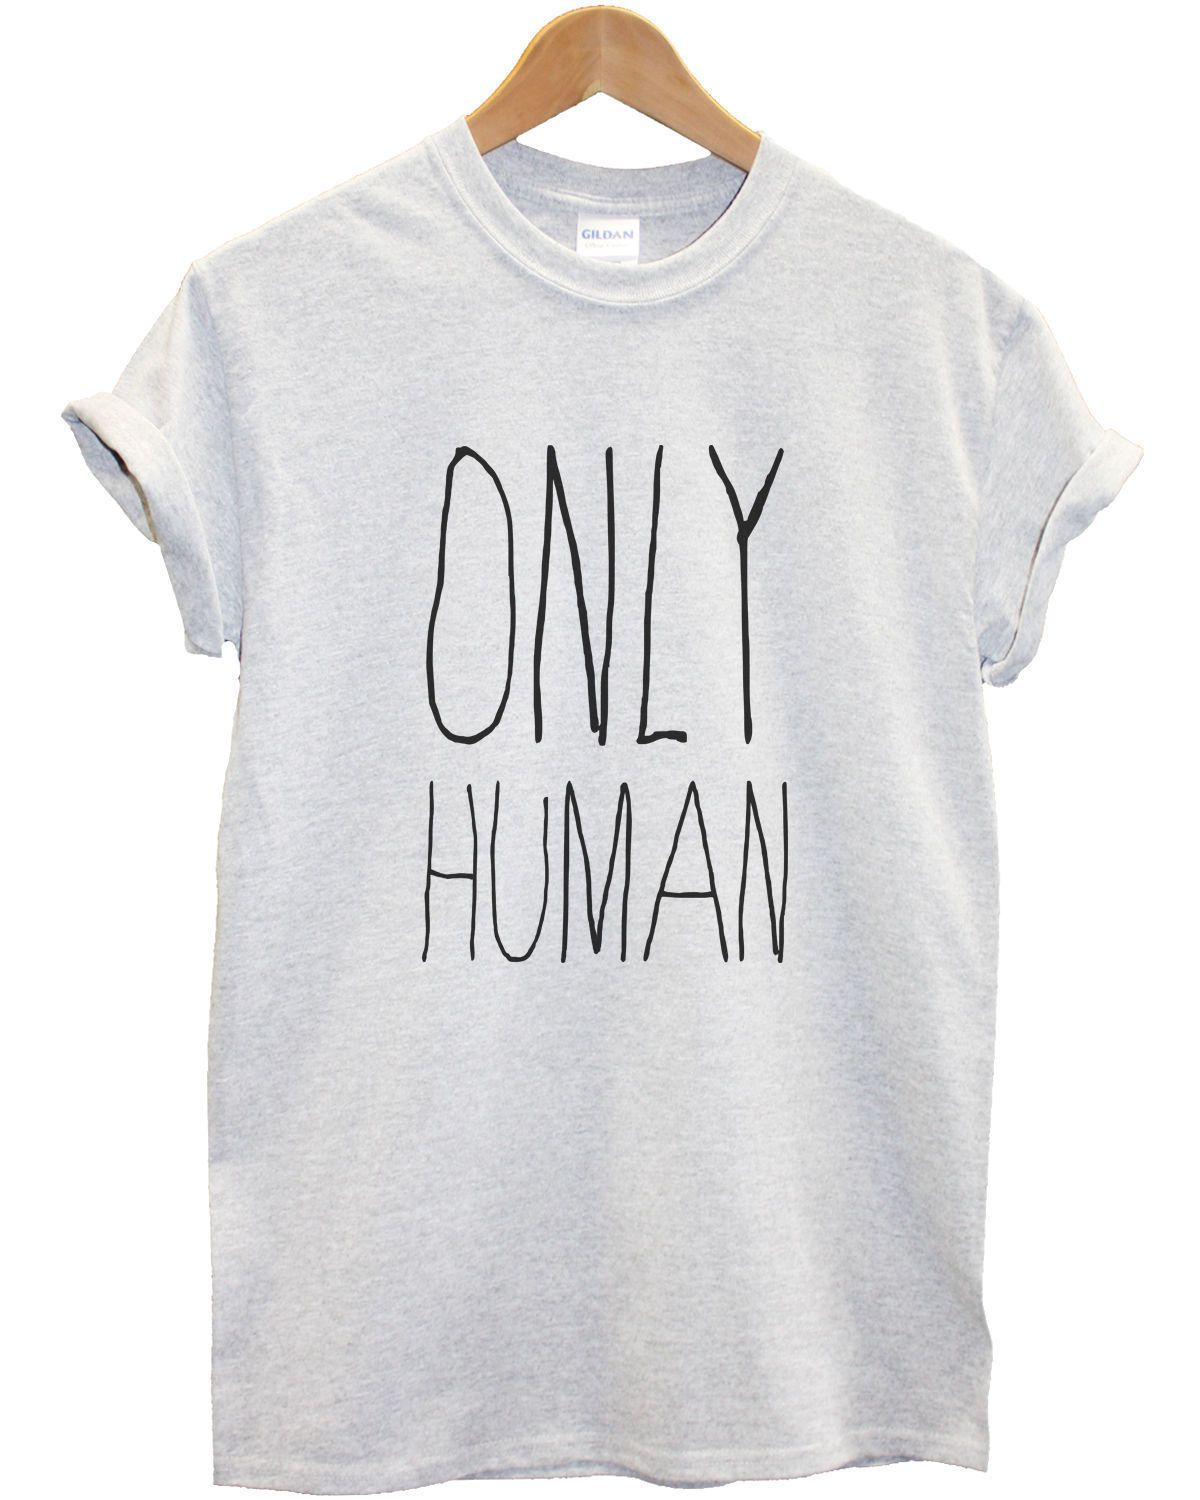 Design t shirt girl - Tumblr Girl T Shirt Designs Only Human T Shirt Top